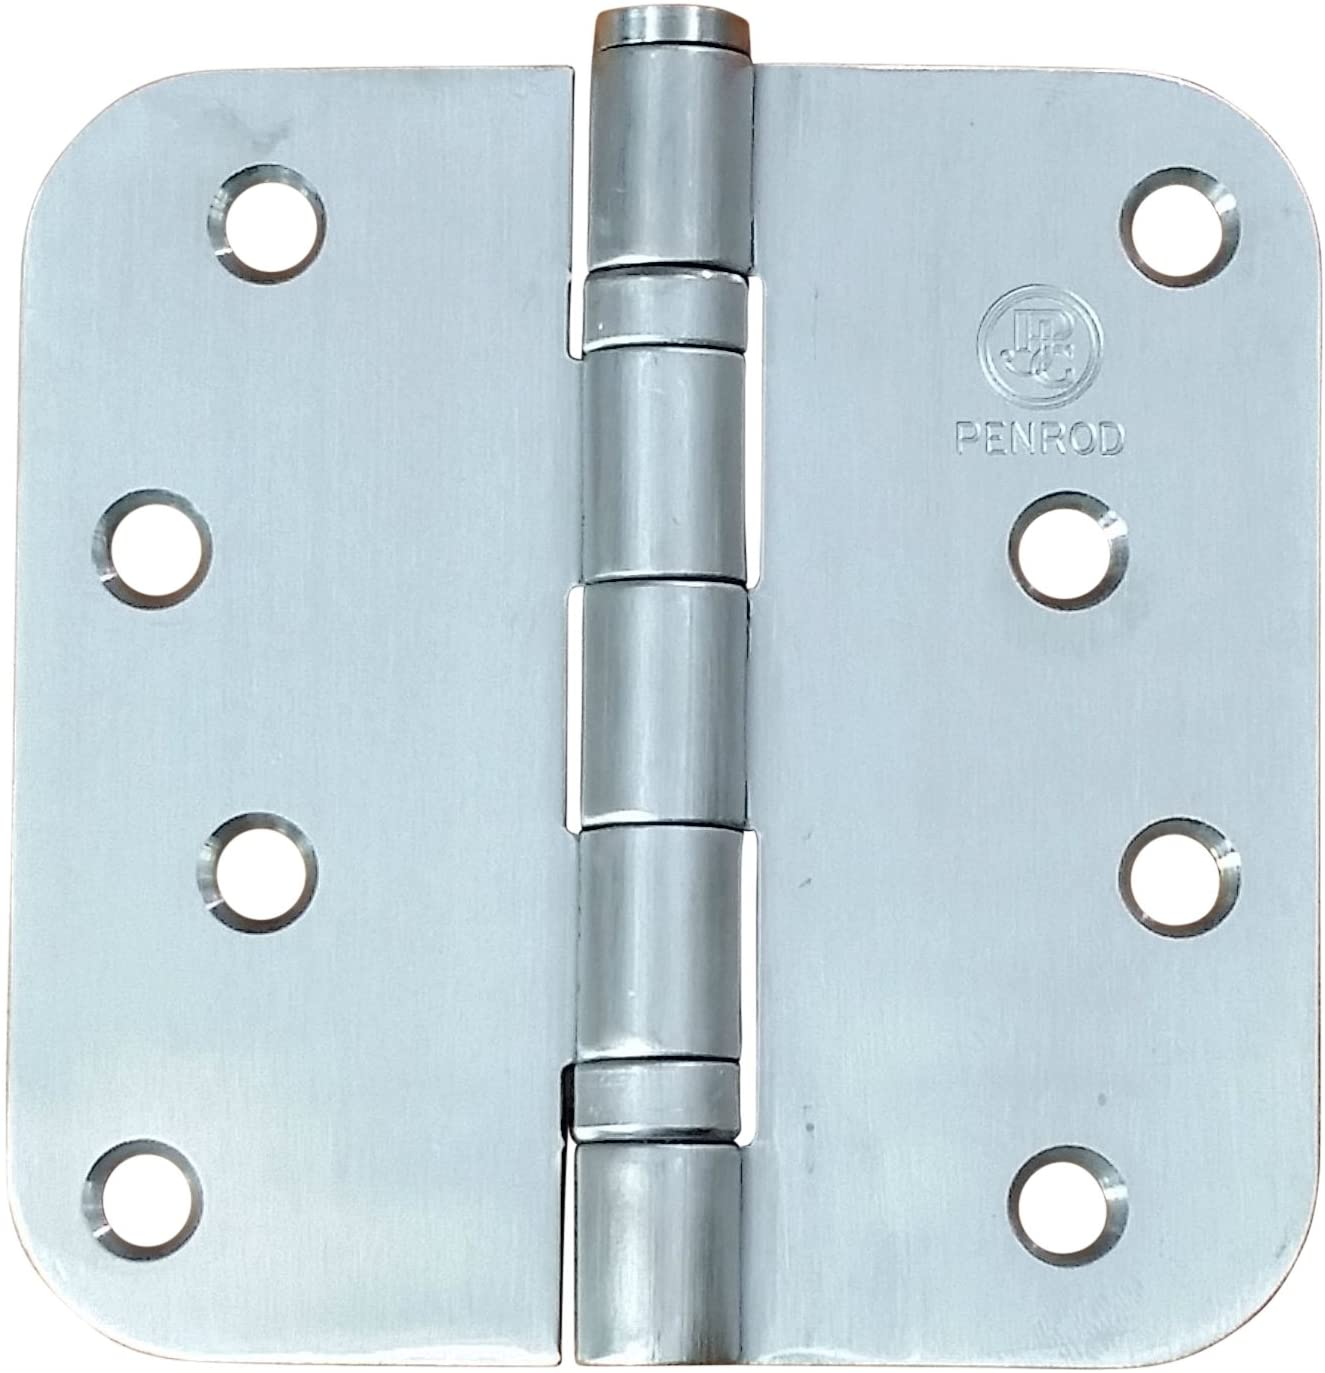 Penrod Stainless Steel Ball Bearing Door Hinges, 4 Inch with 5/8 Inch Radius, Riveted Non-Removable Pin, 3 Pack